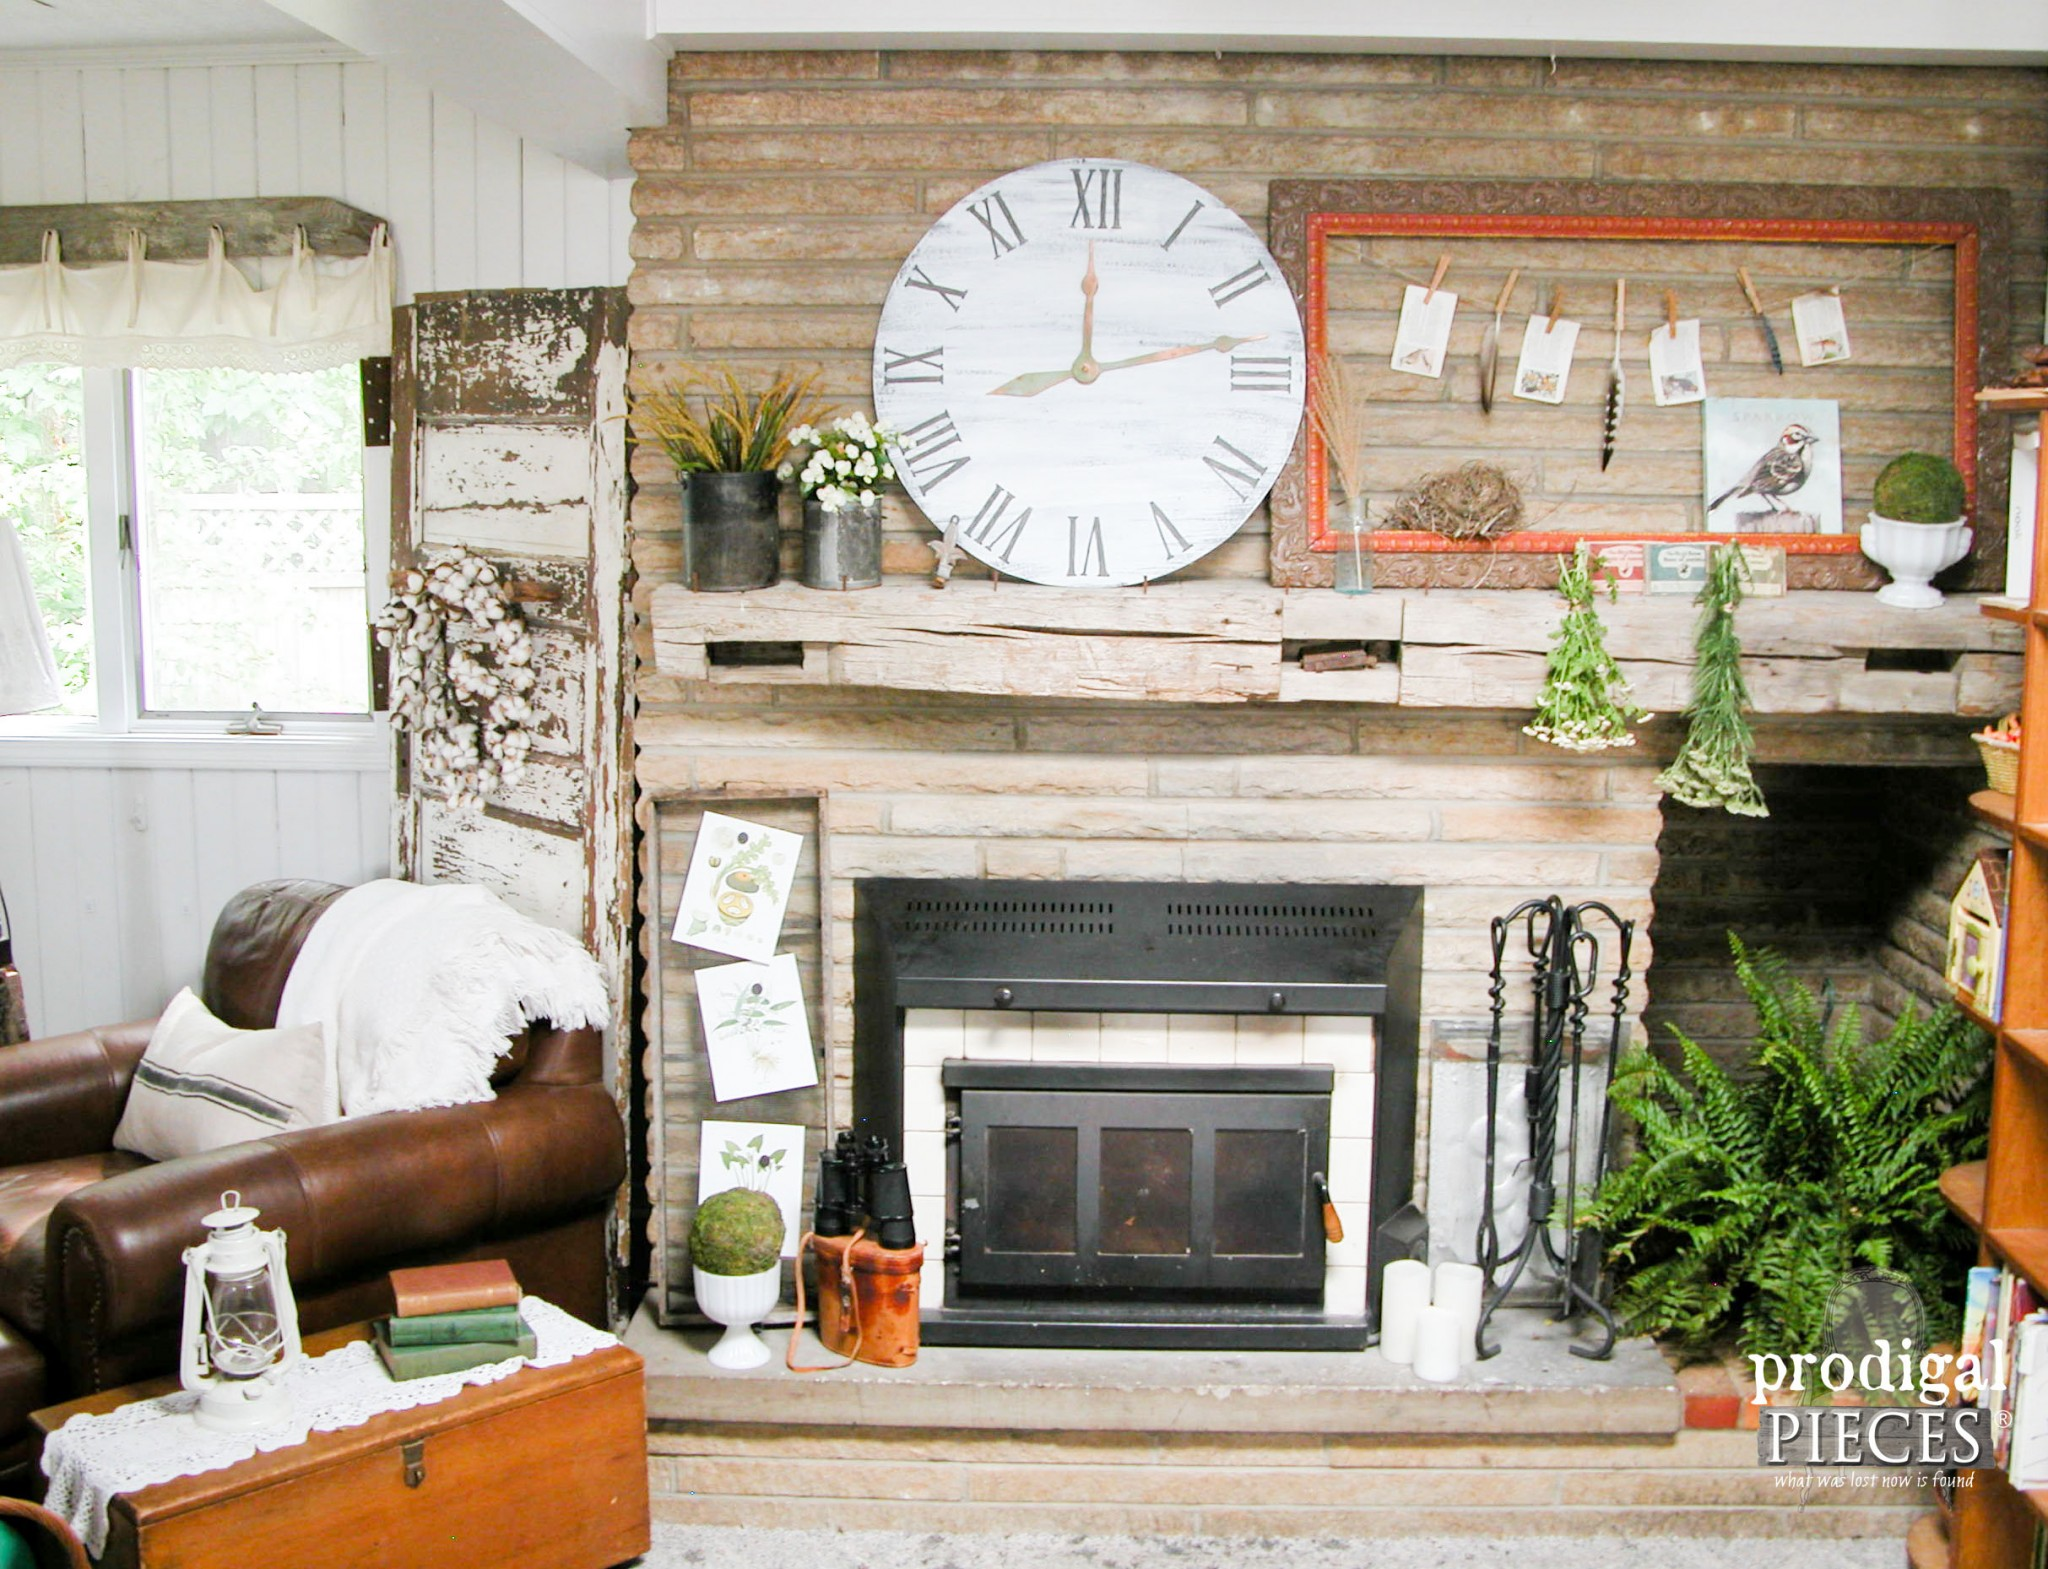 Summer Farmhouse Style Mantel with Faux Clock by Prodigal Pieces | www.prodigalpieces.com